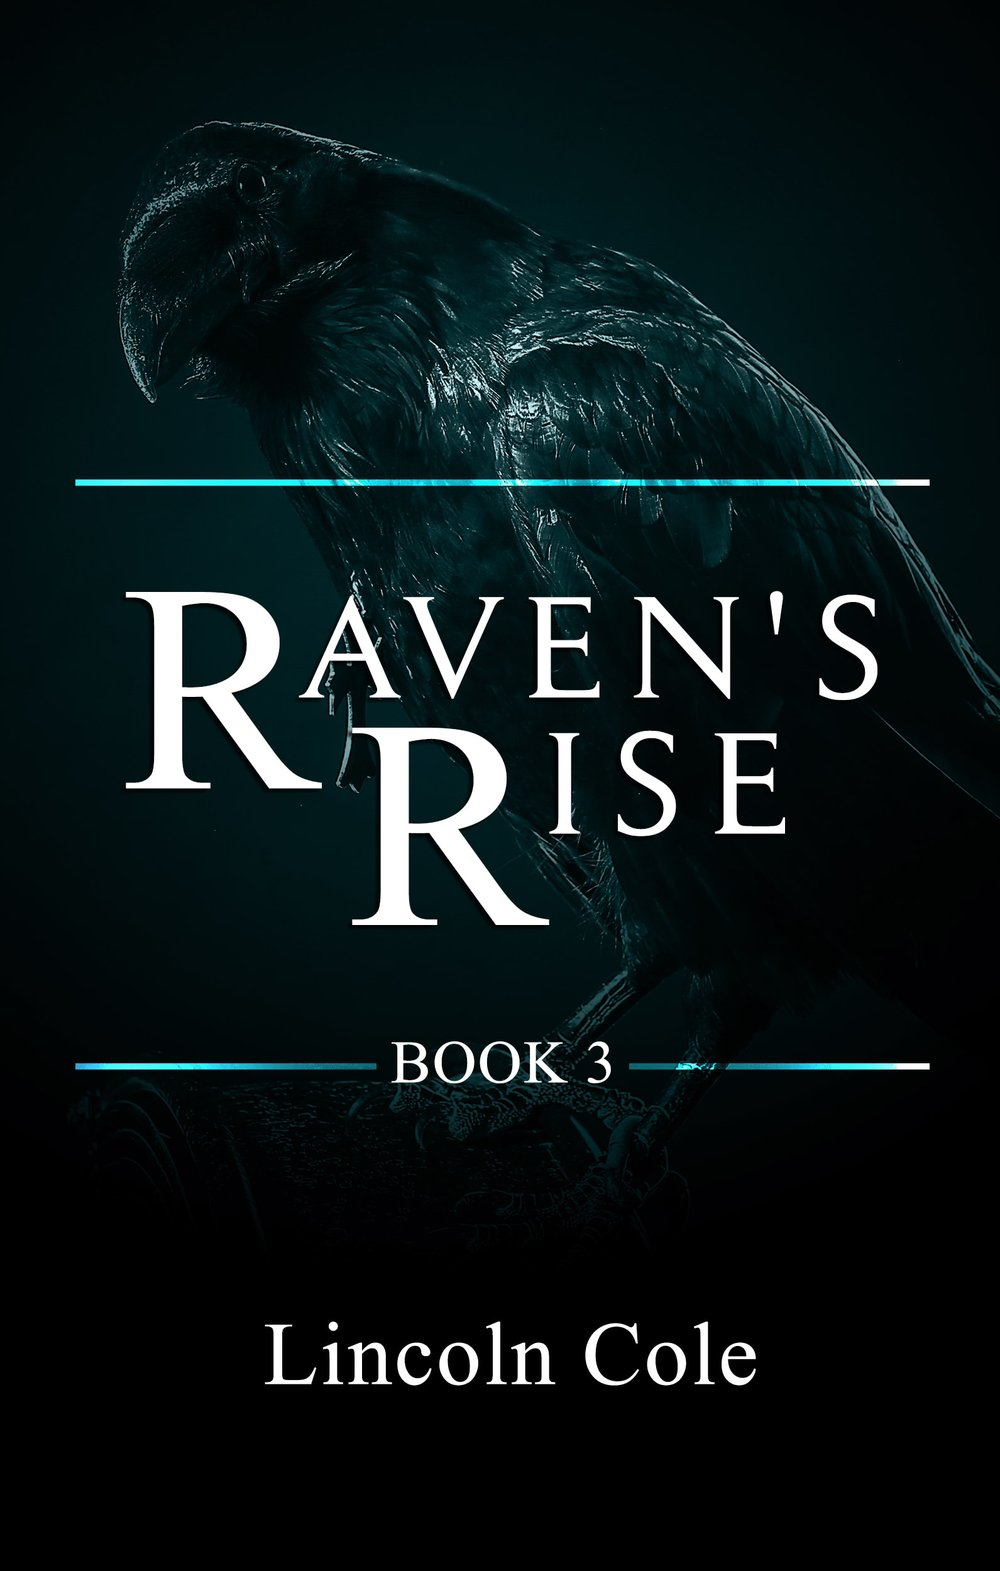 Raven's Rise - Everything has come crashing down after the events of Raven's Fall: barely anyone is left standing and the Church is blaming Abigail for the fallout. Raven's Rise begins after the explosive ending of Raven's Fall.Haatim and Dominick are struggling to understand how their worlds were flipped upside down so completely, but they are running out of time. The threat that began in the mountains is far from over. They need to find a way to survive what comes next and put a stop to the cult that is threatening their existence before it is too late.